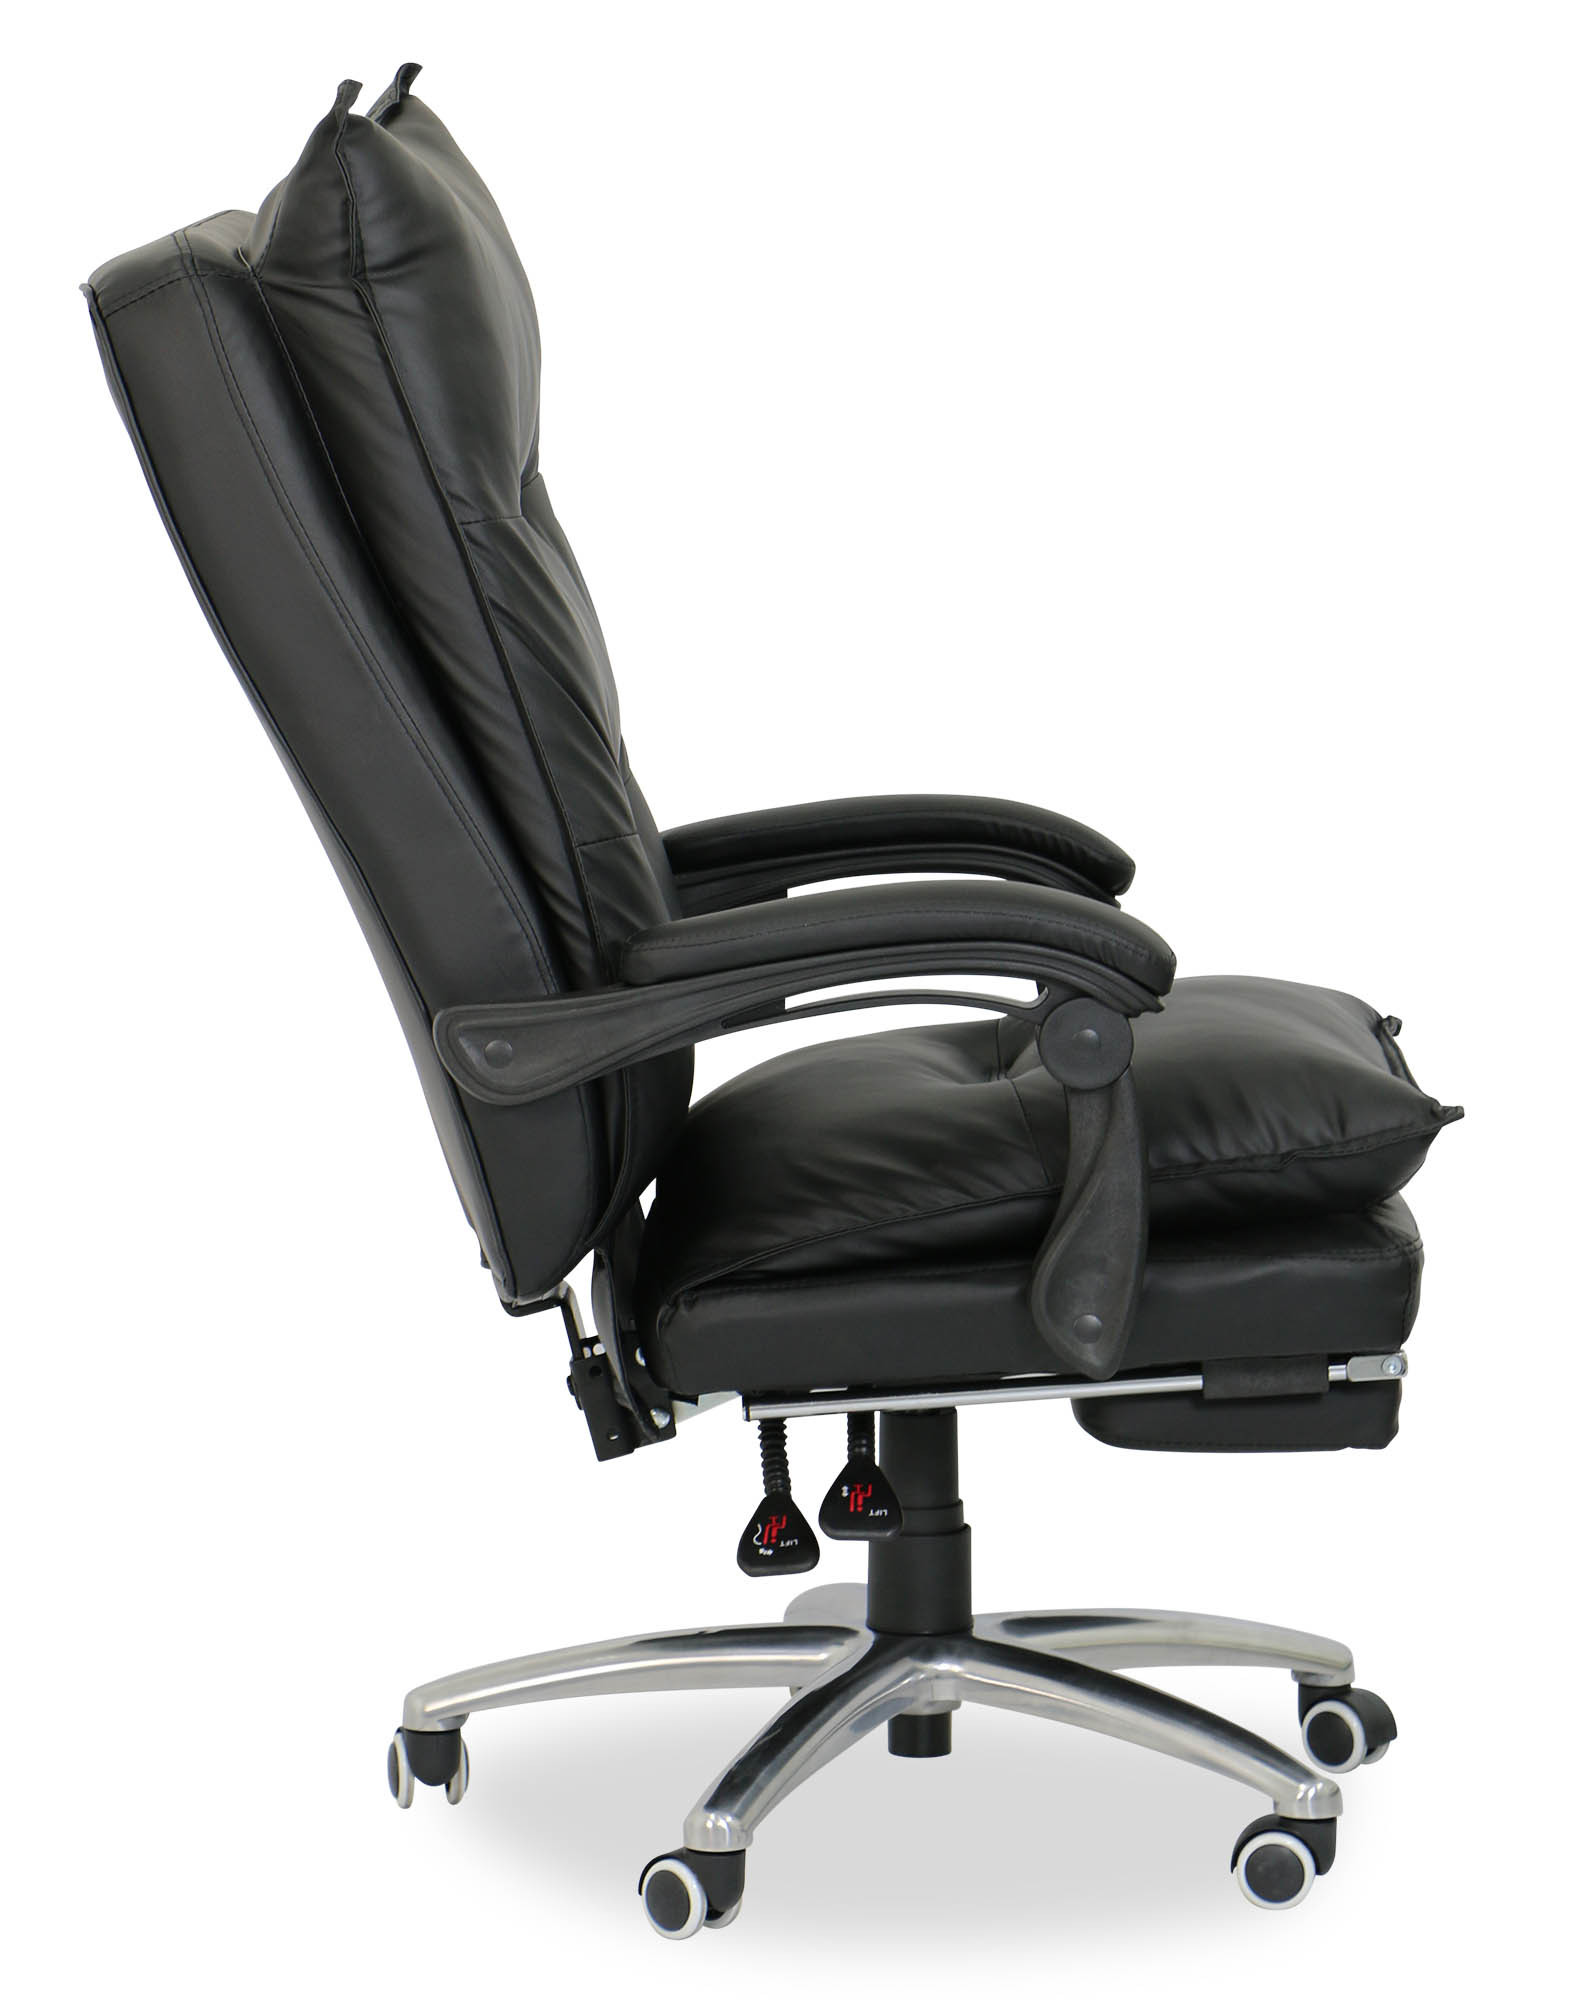 Deluxe Pu Executive Office Chair Black 51 Customer Reviews